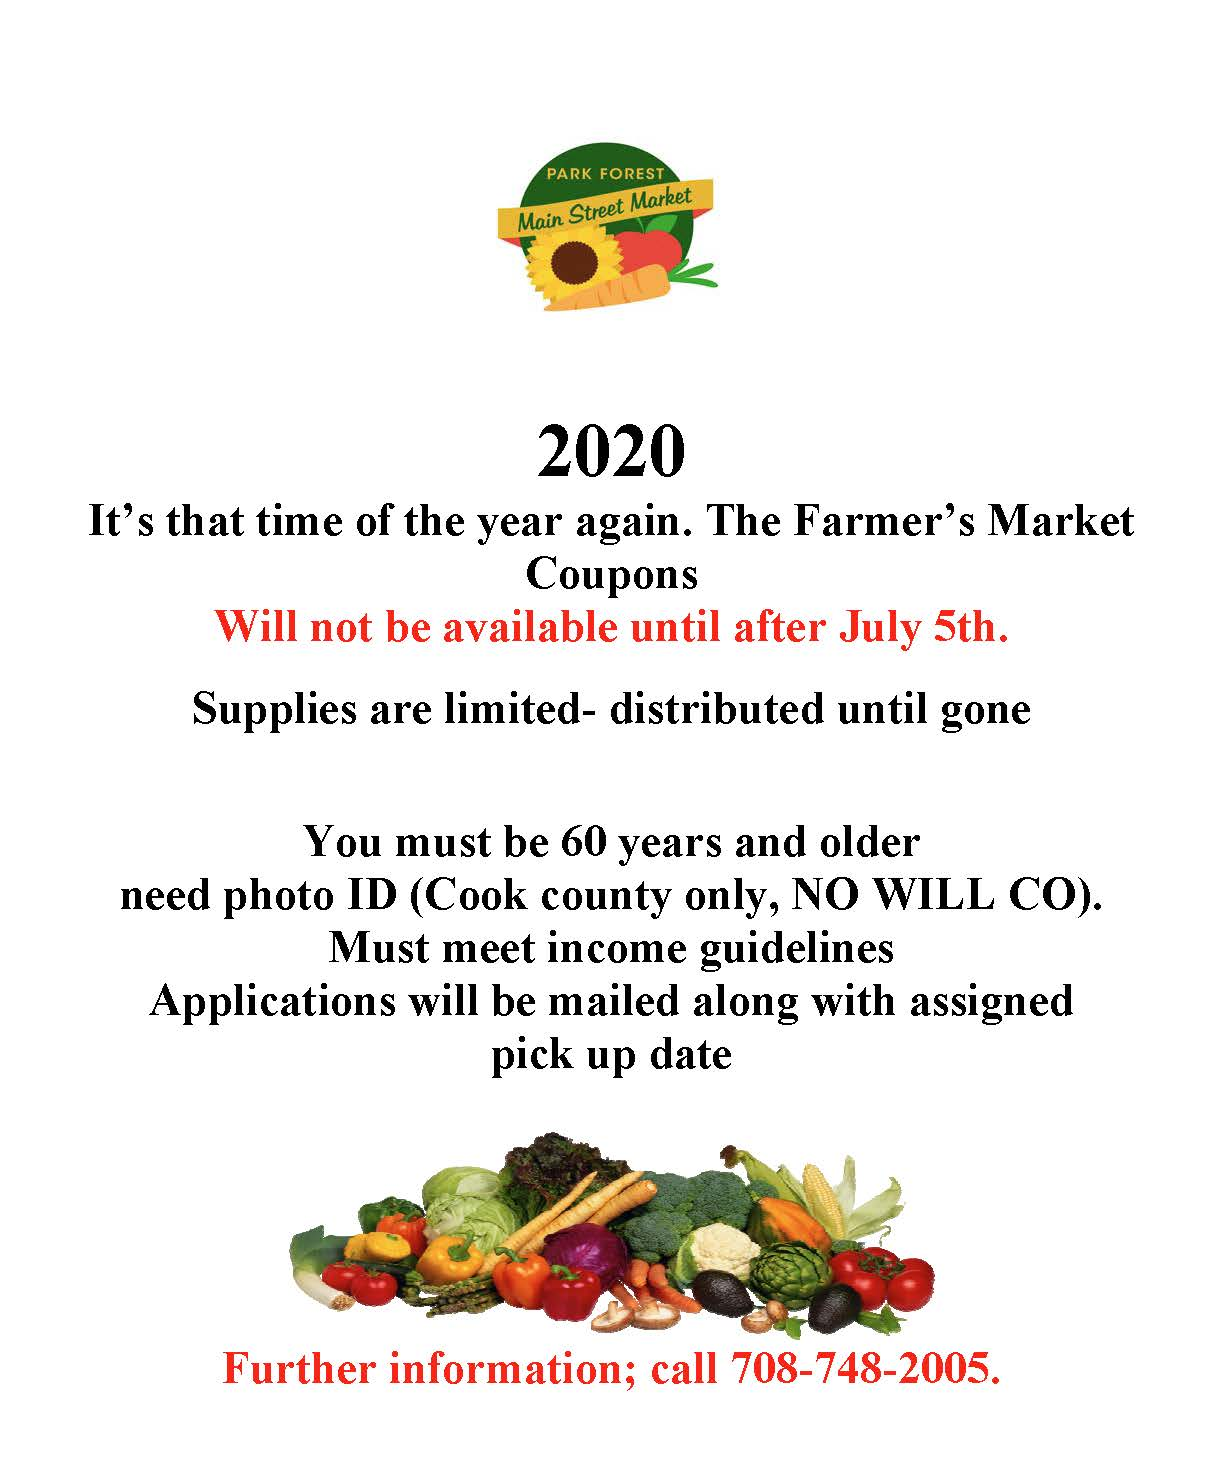 Farmer senior coupon flyer 2020